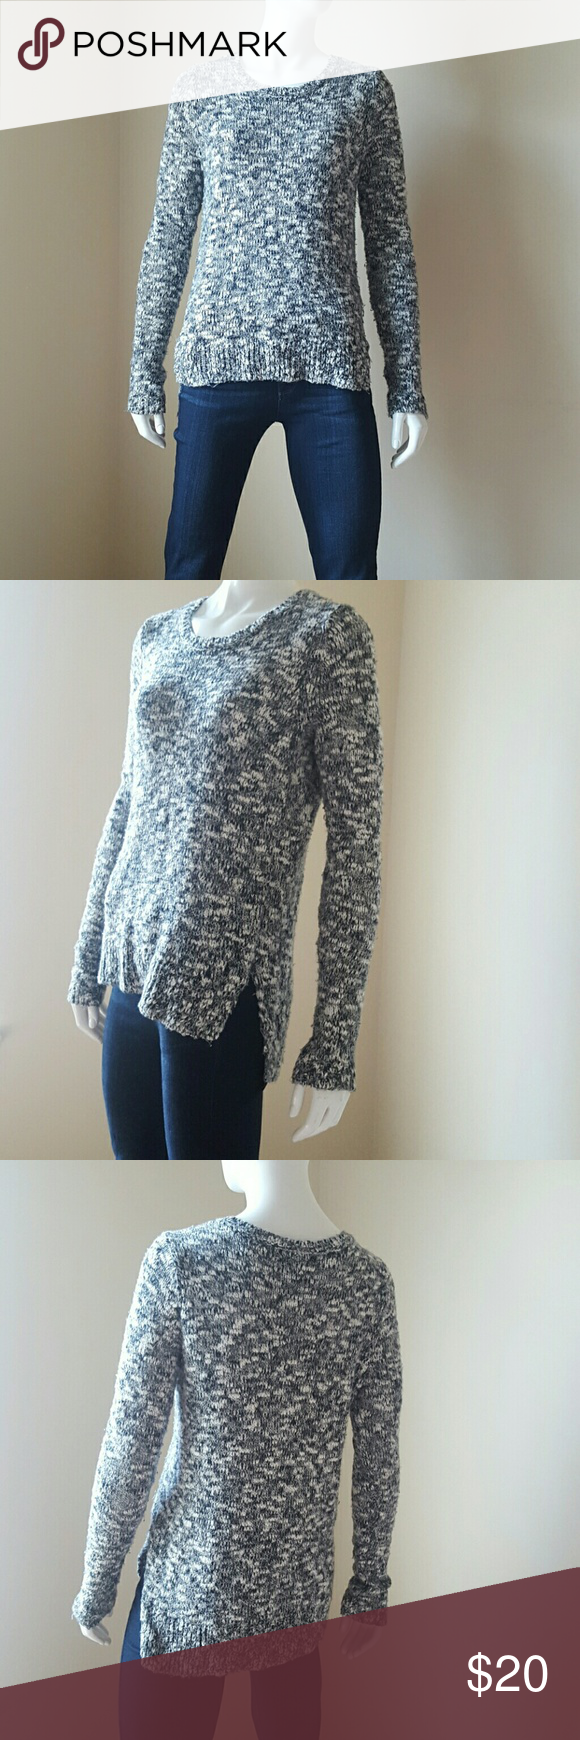 Abercrombie & Fitch Marbled grey knitted sweater Excellent ...